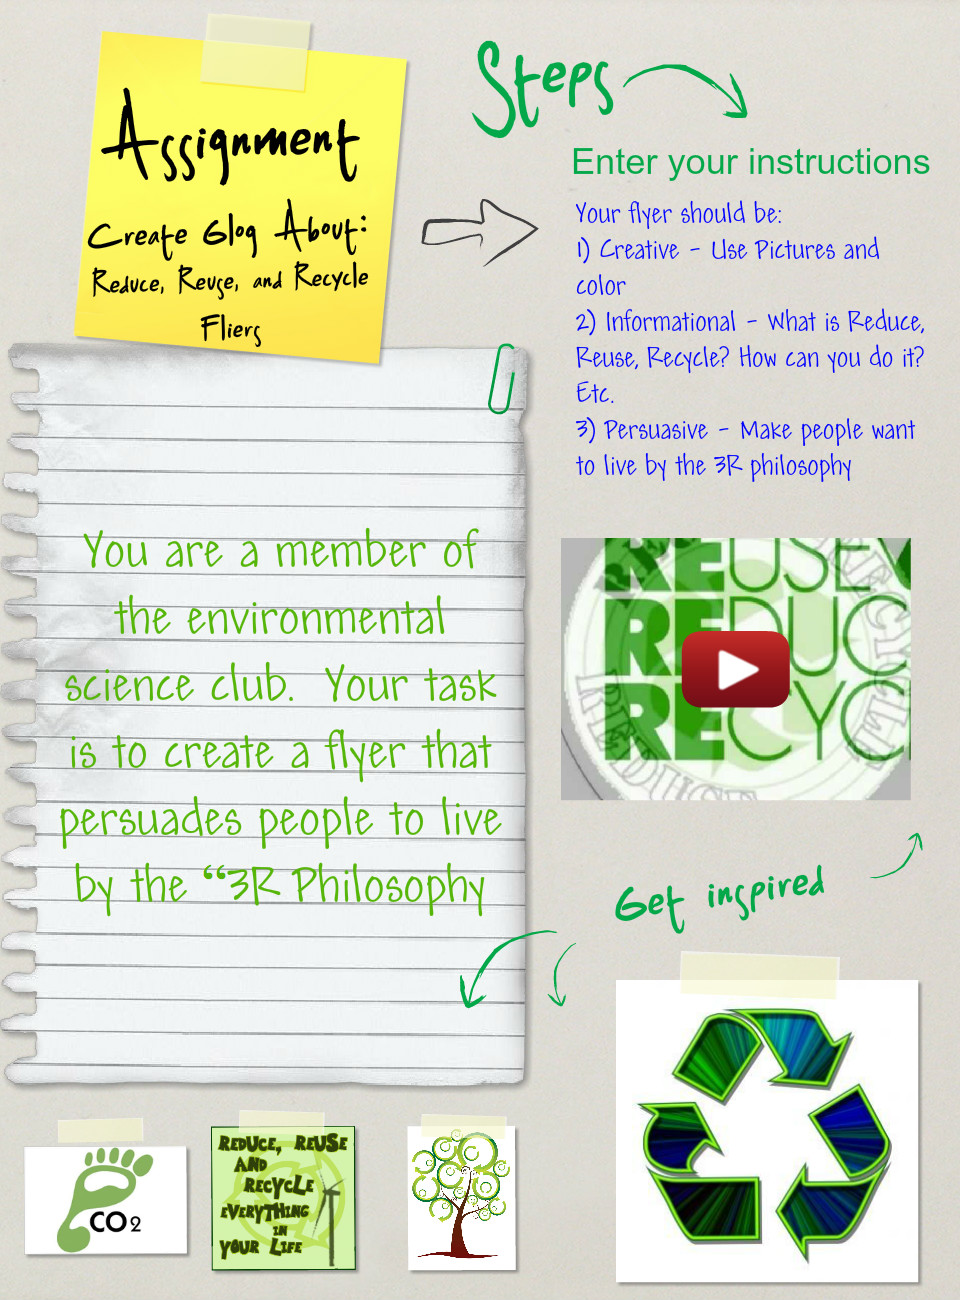 Reduce, Reuse, and Recycle Flyers